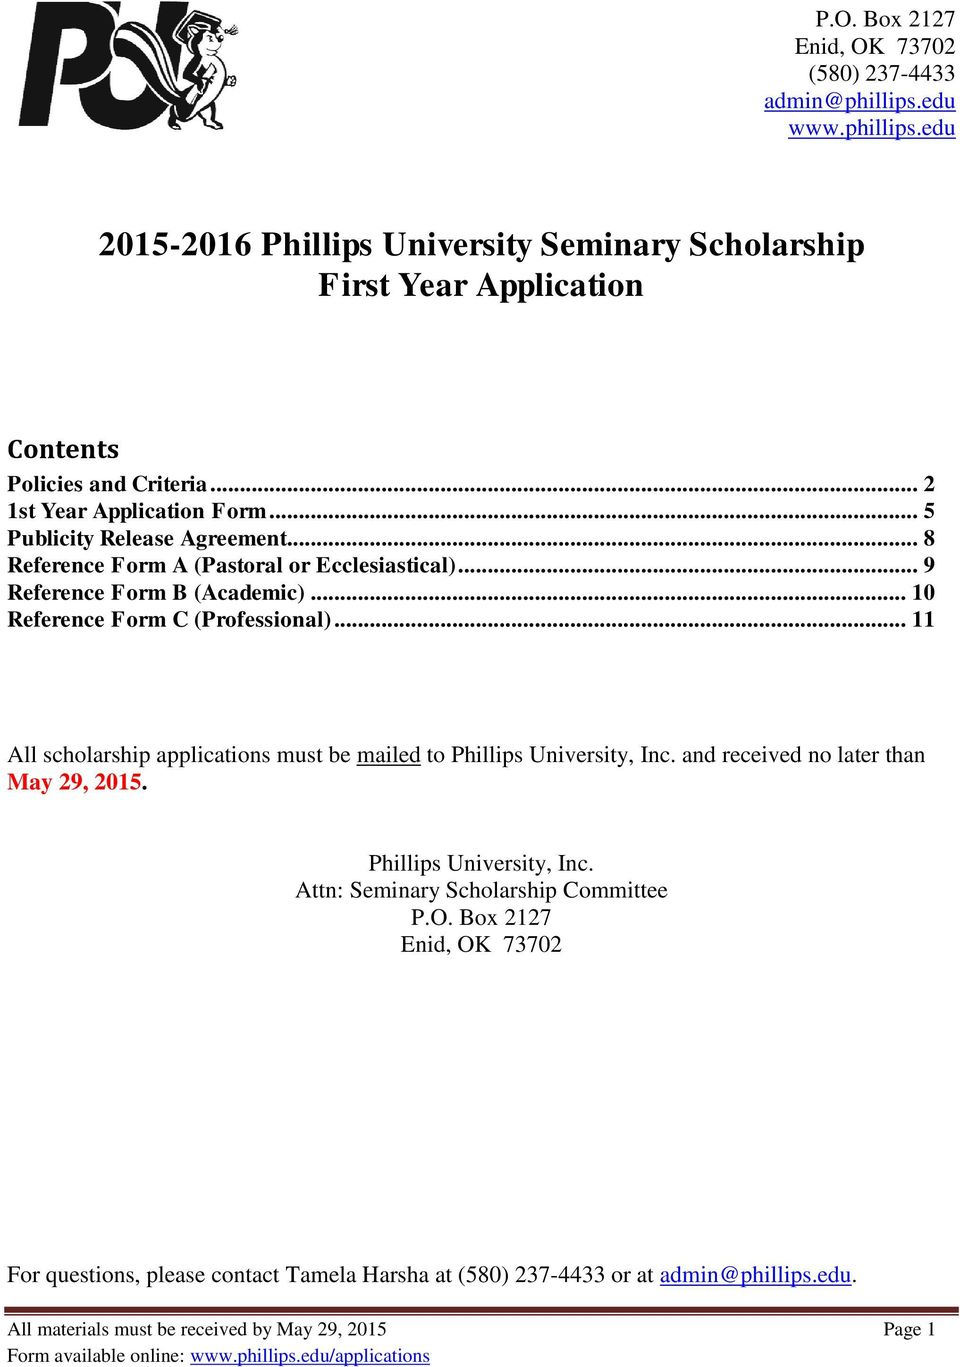 .. 10 Reference Form C (Professional)... 11 All scholarship applications must be mailed to Phillips University, Inc. and received no later than May 29, 2015.